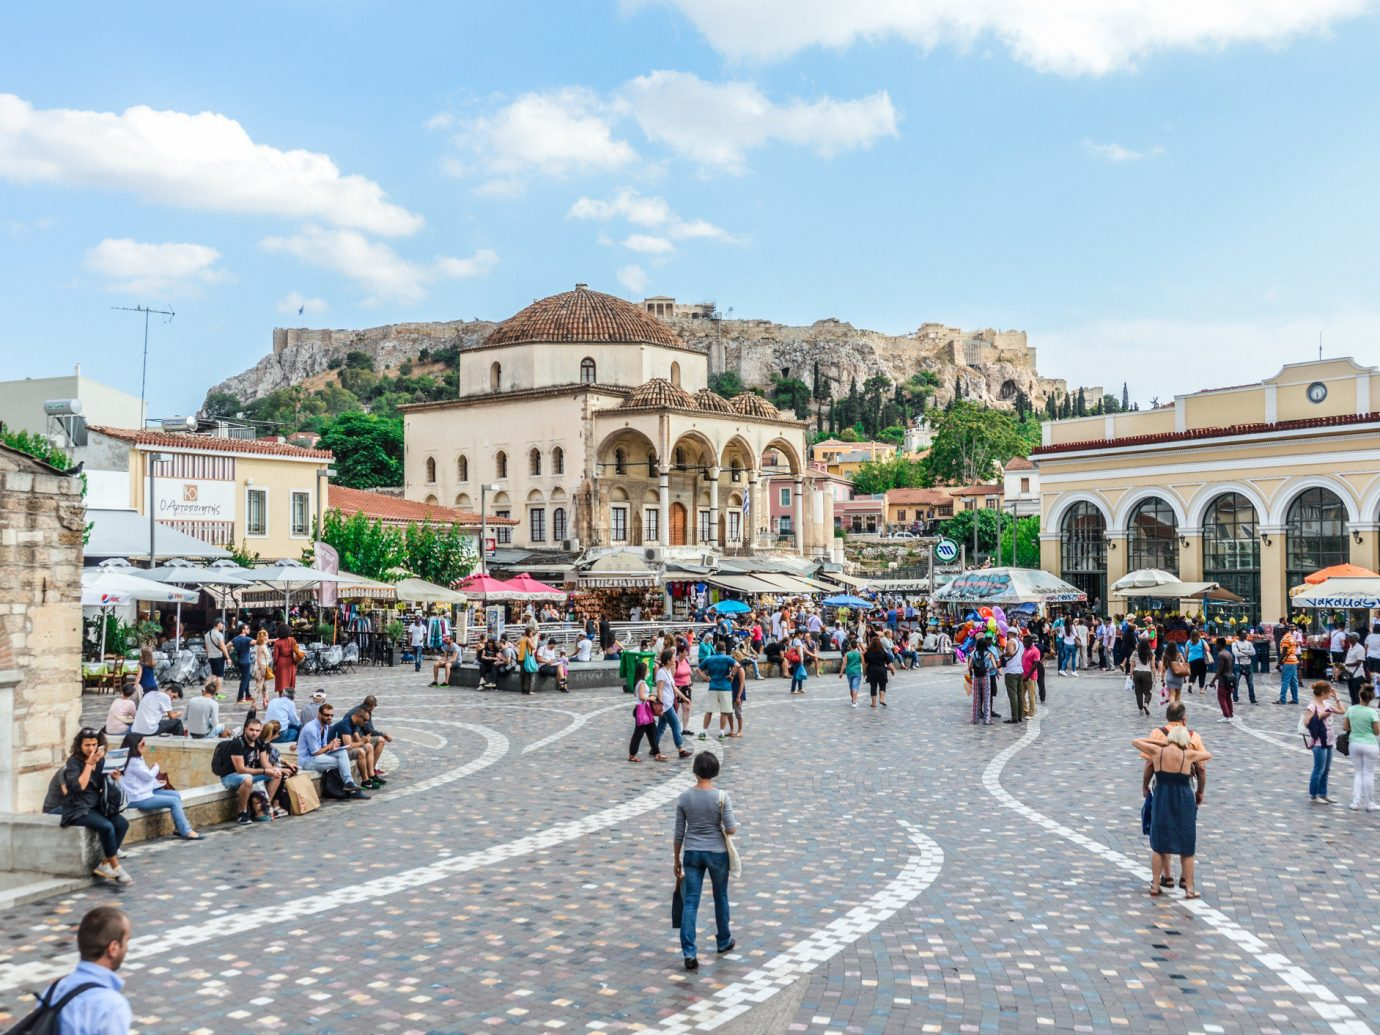 Travel Tips sky building outdoor road Town town square City plaza people public space tourism group tourist attraction recreation pedestrian street Downtown tours ancient rome square stone several colonnade crowd